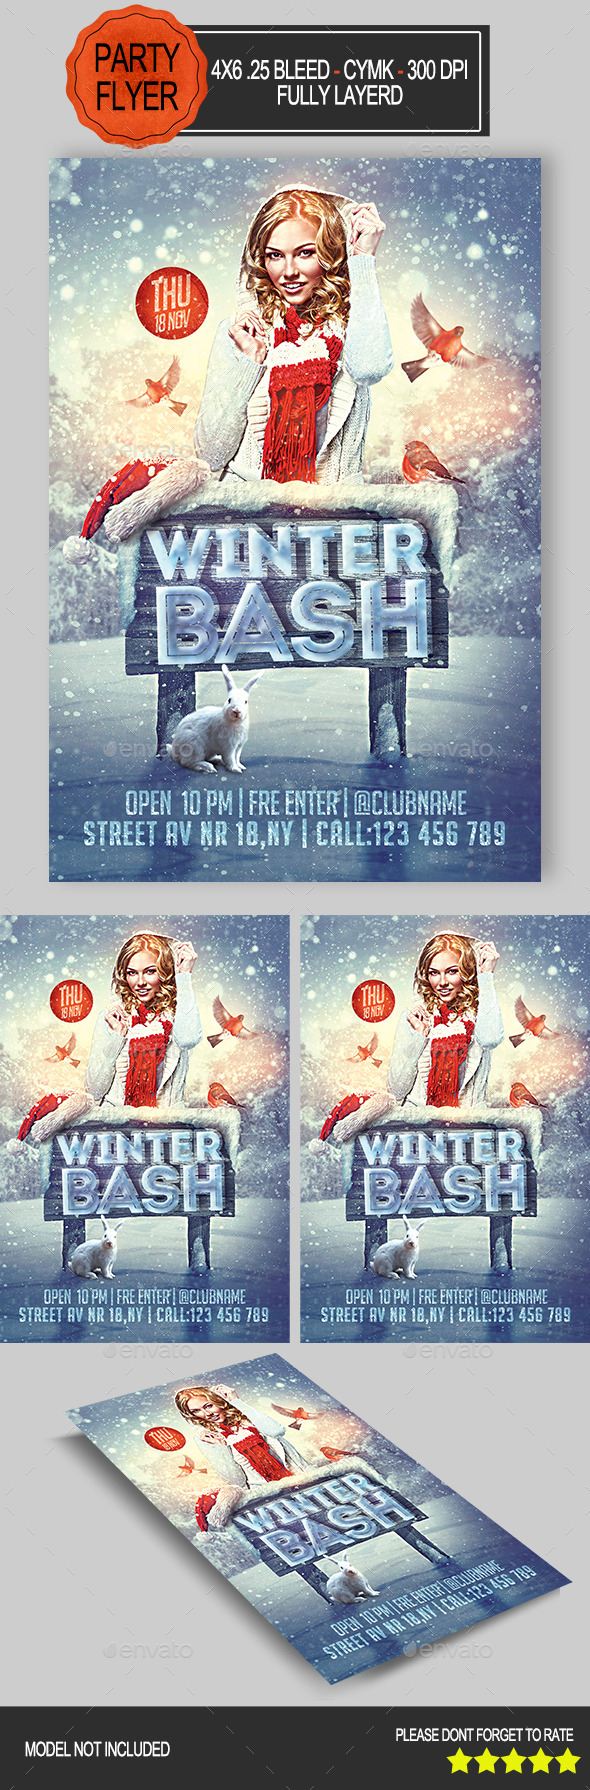 GraphicRiver Winter Bash Party Flyer 9255685